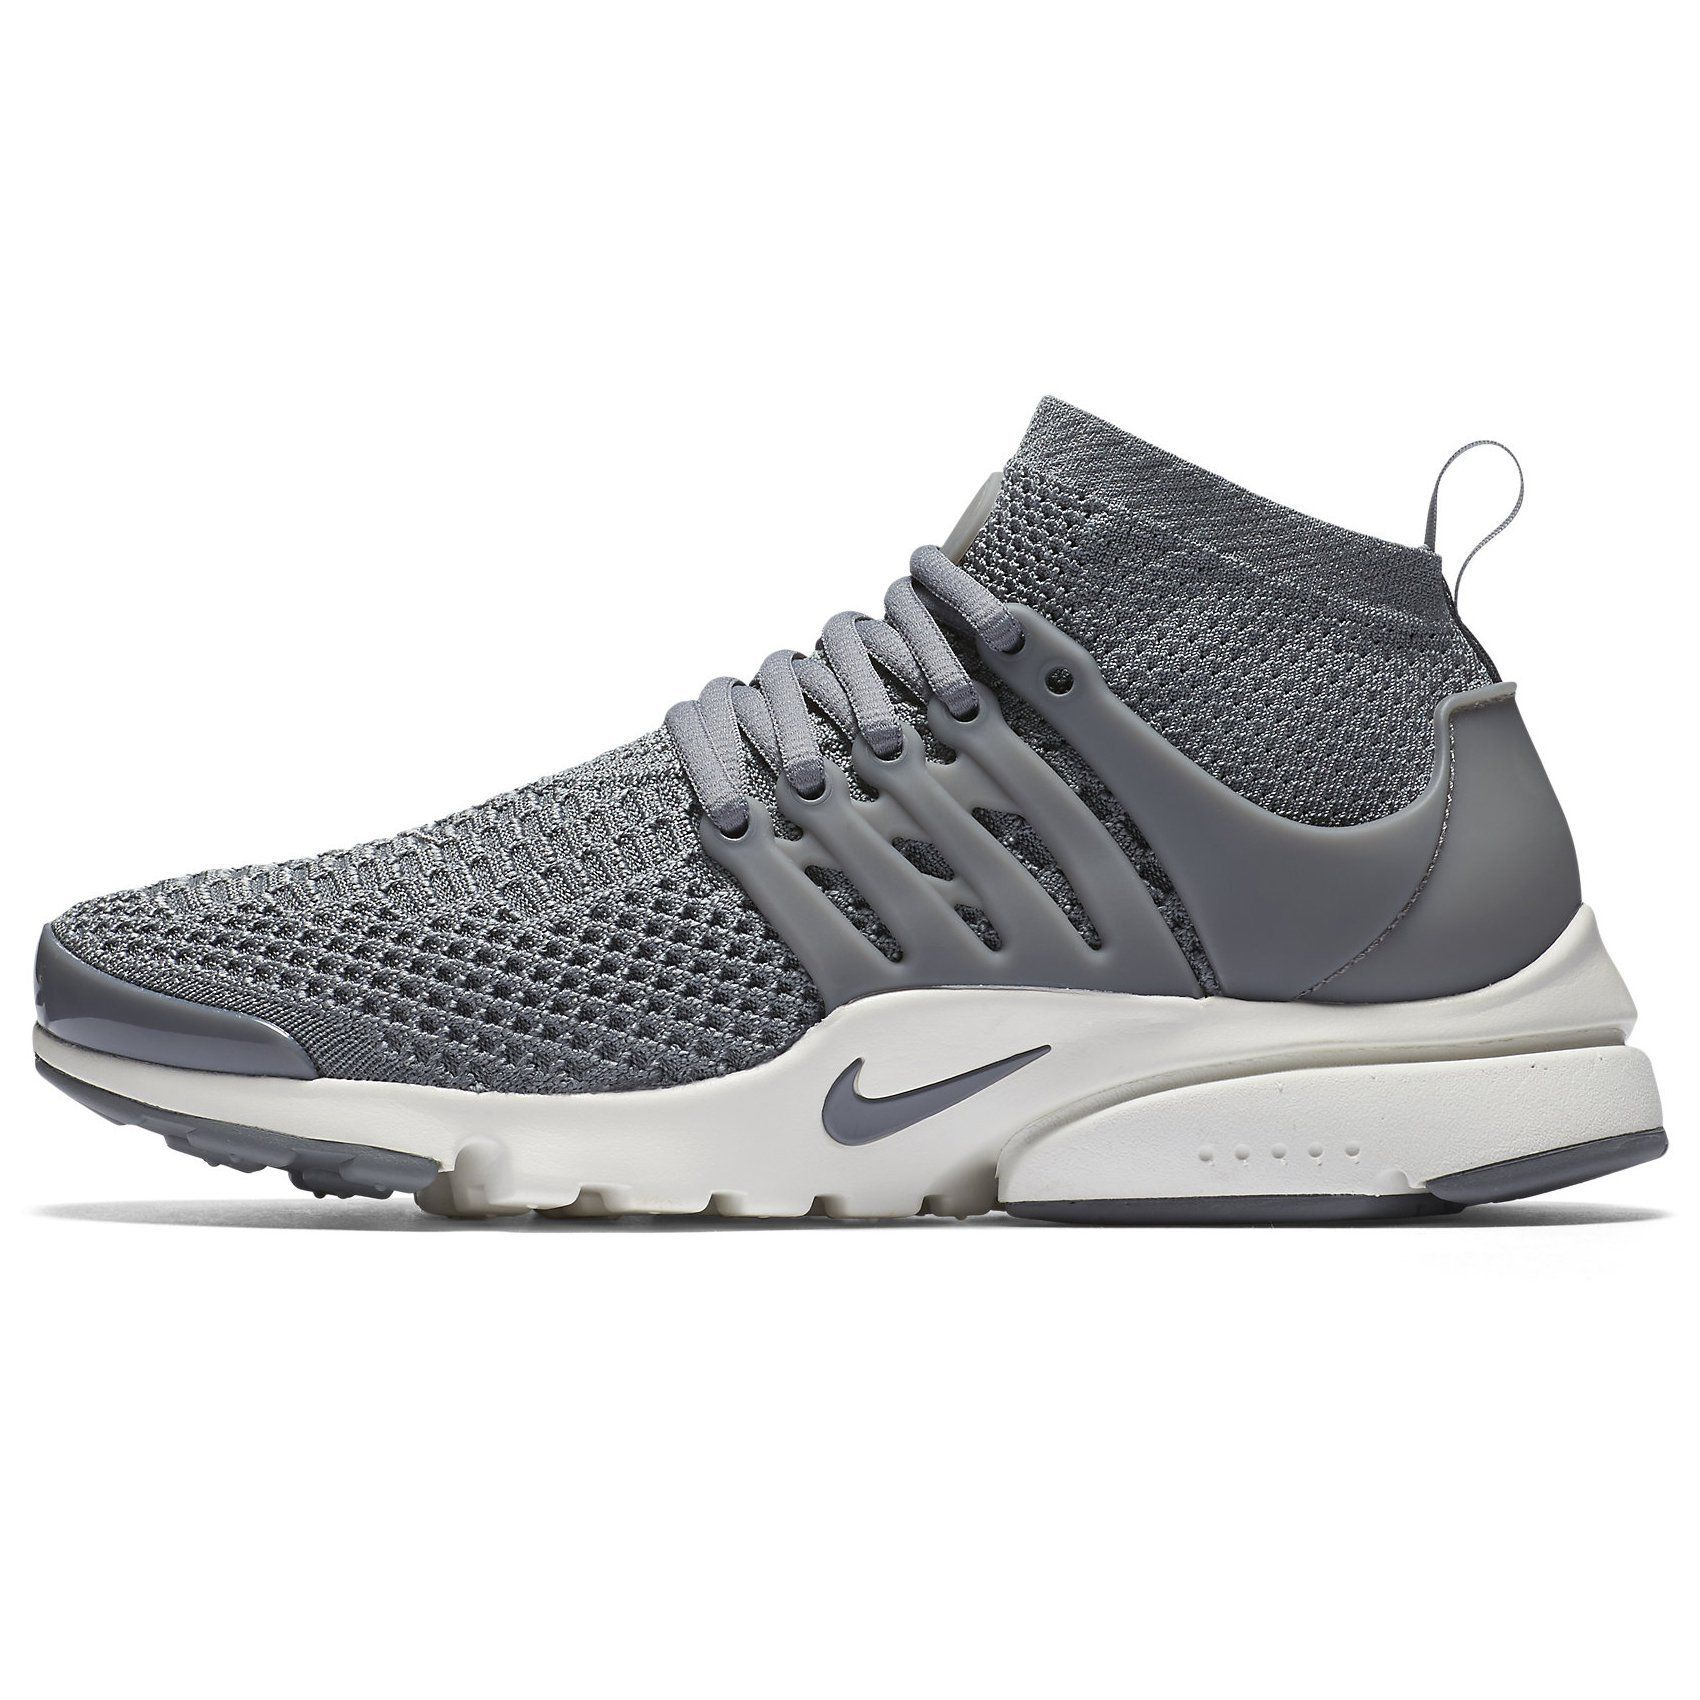 Nike Women S Air Presto Flyknit Ultra 835738 002 Size 10 Nike Shoes Women Womens Athletic Shoes White Athletic Shoes